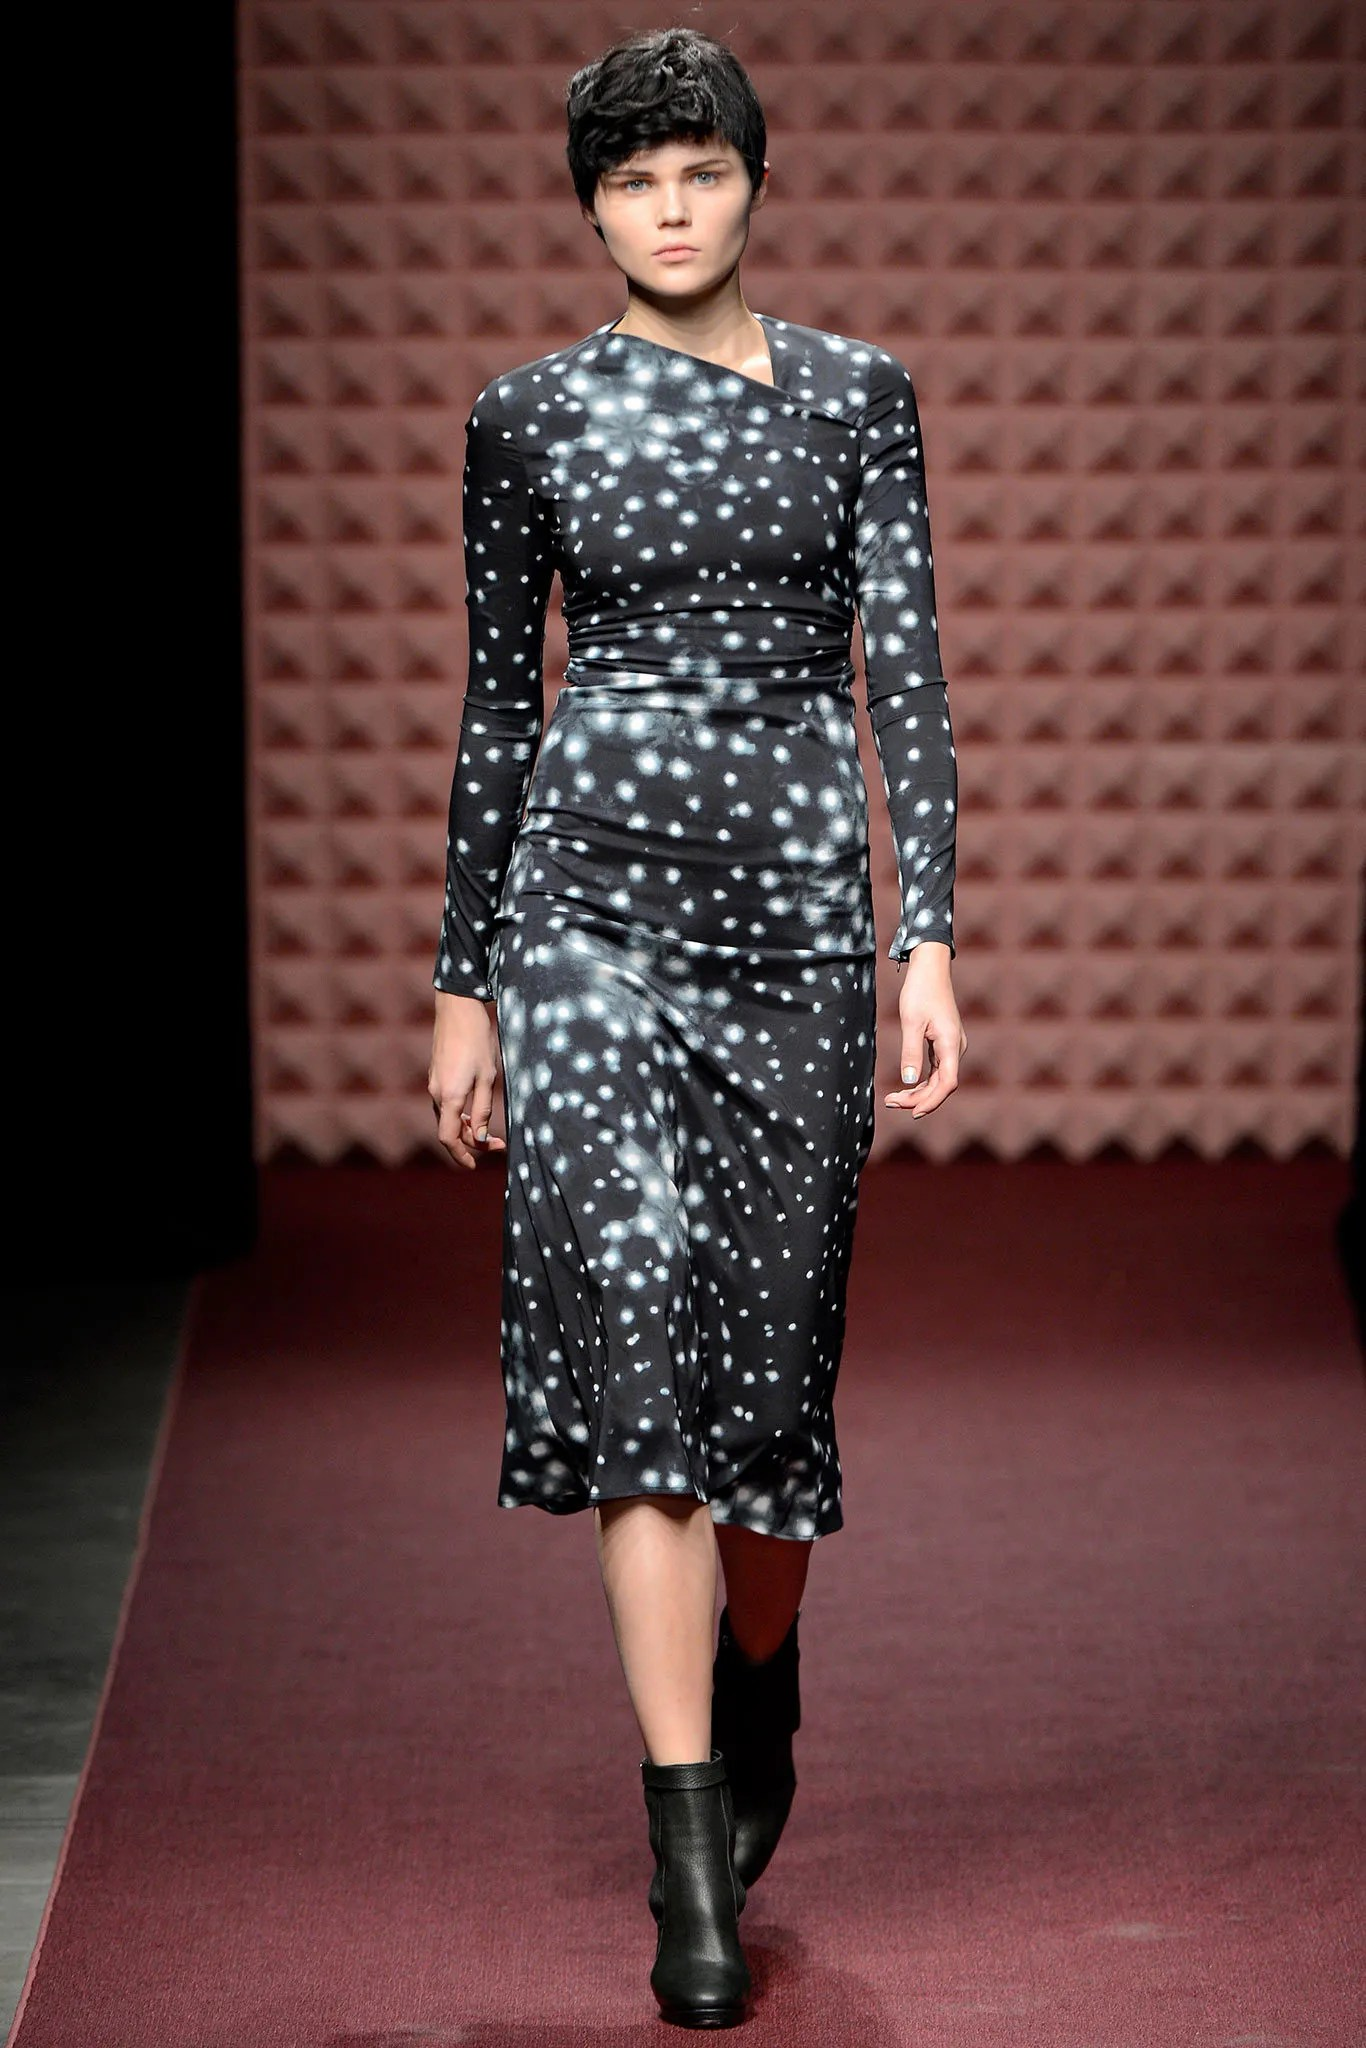 Rachel Comey's star-print Surveillance dress, Fall 2013